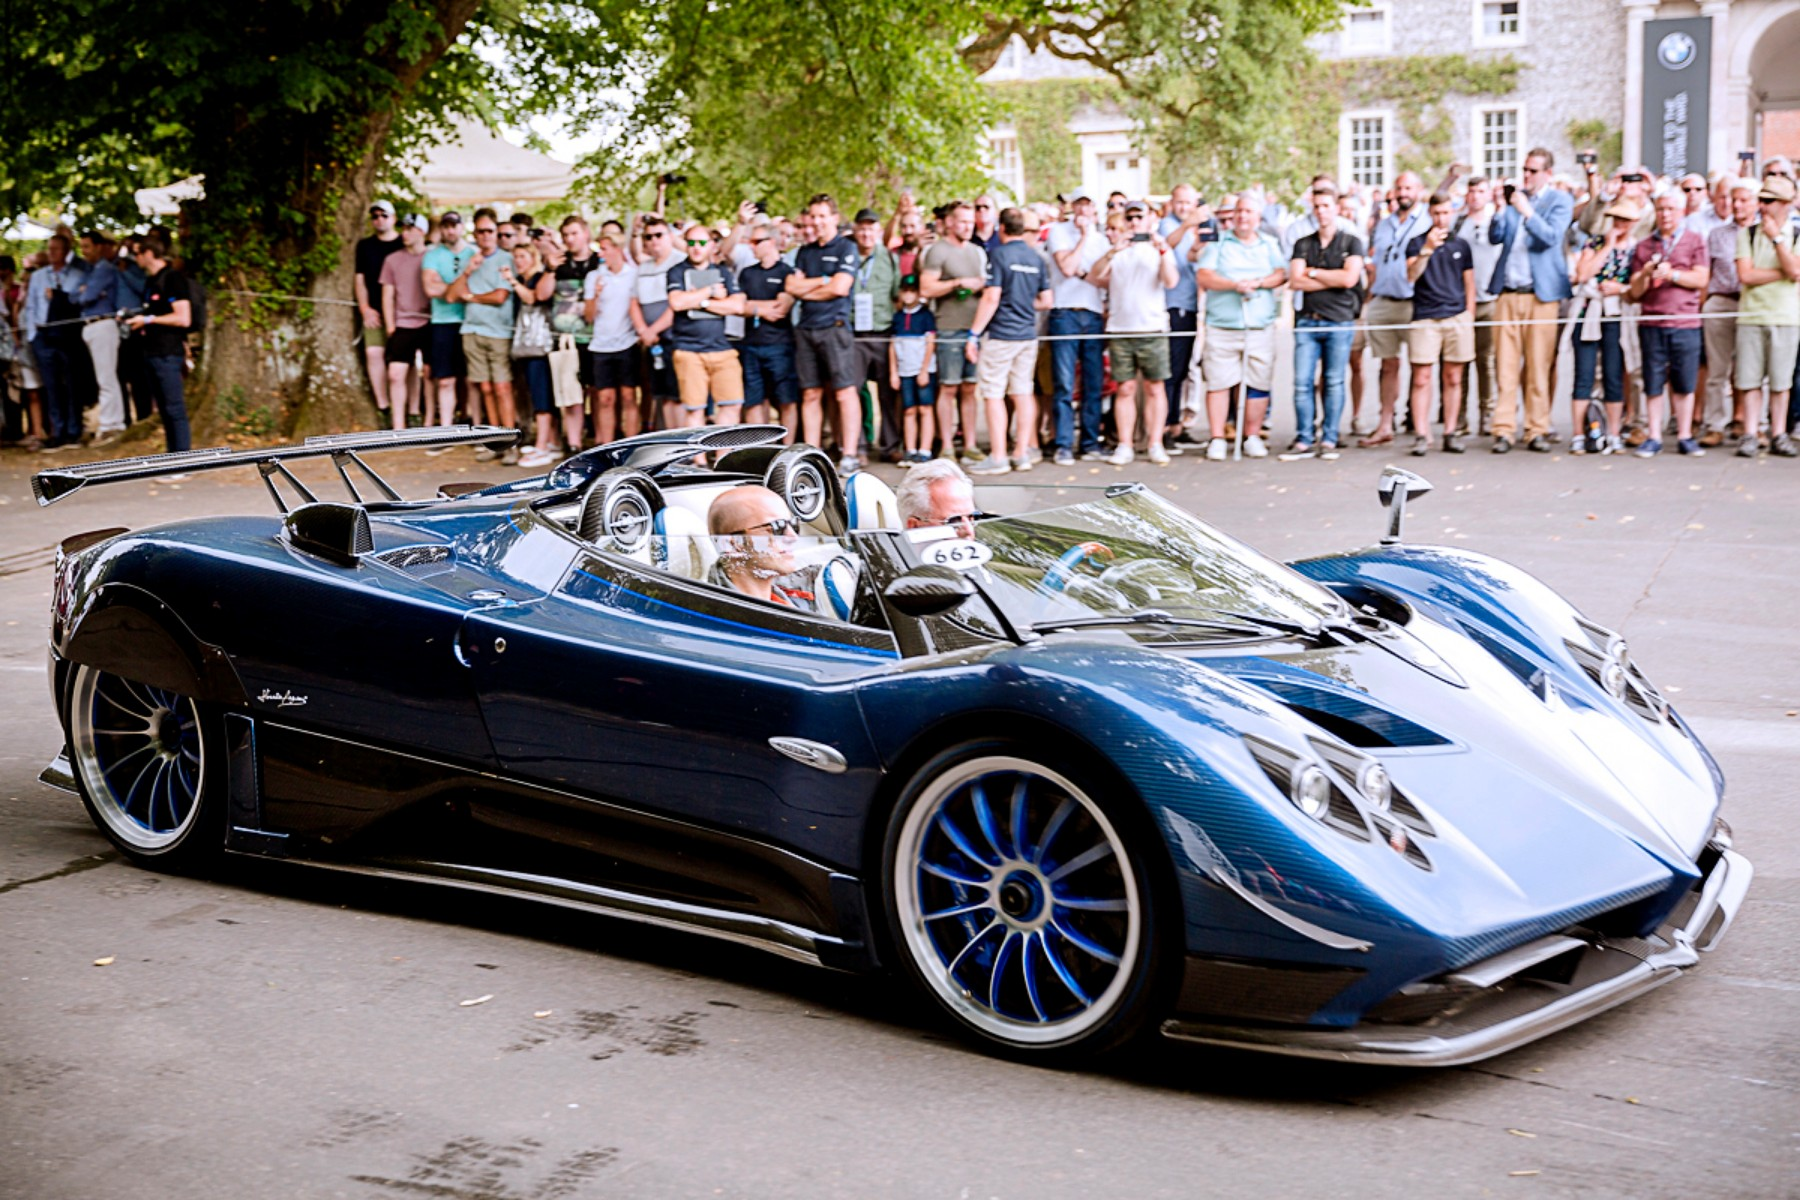 the pagani zonda hp barchetta is the most expensive new car ever sold